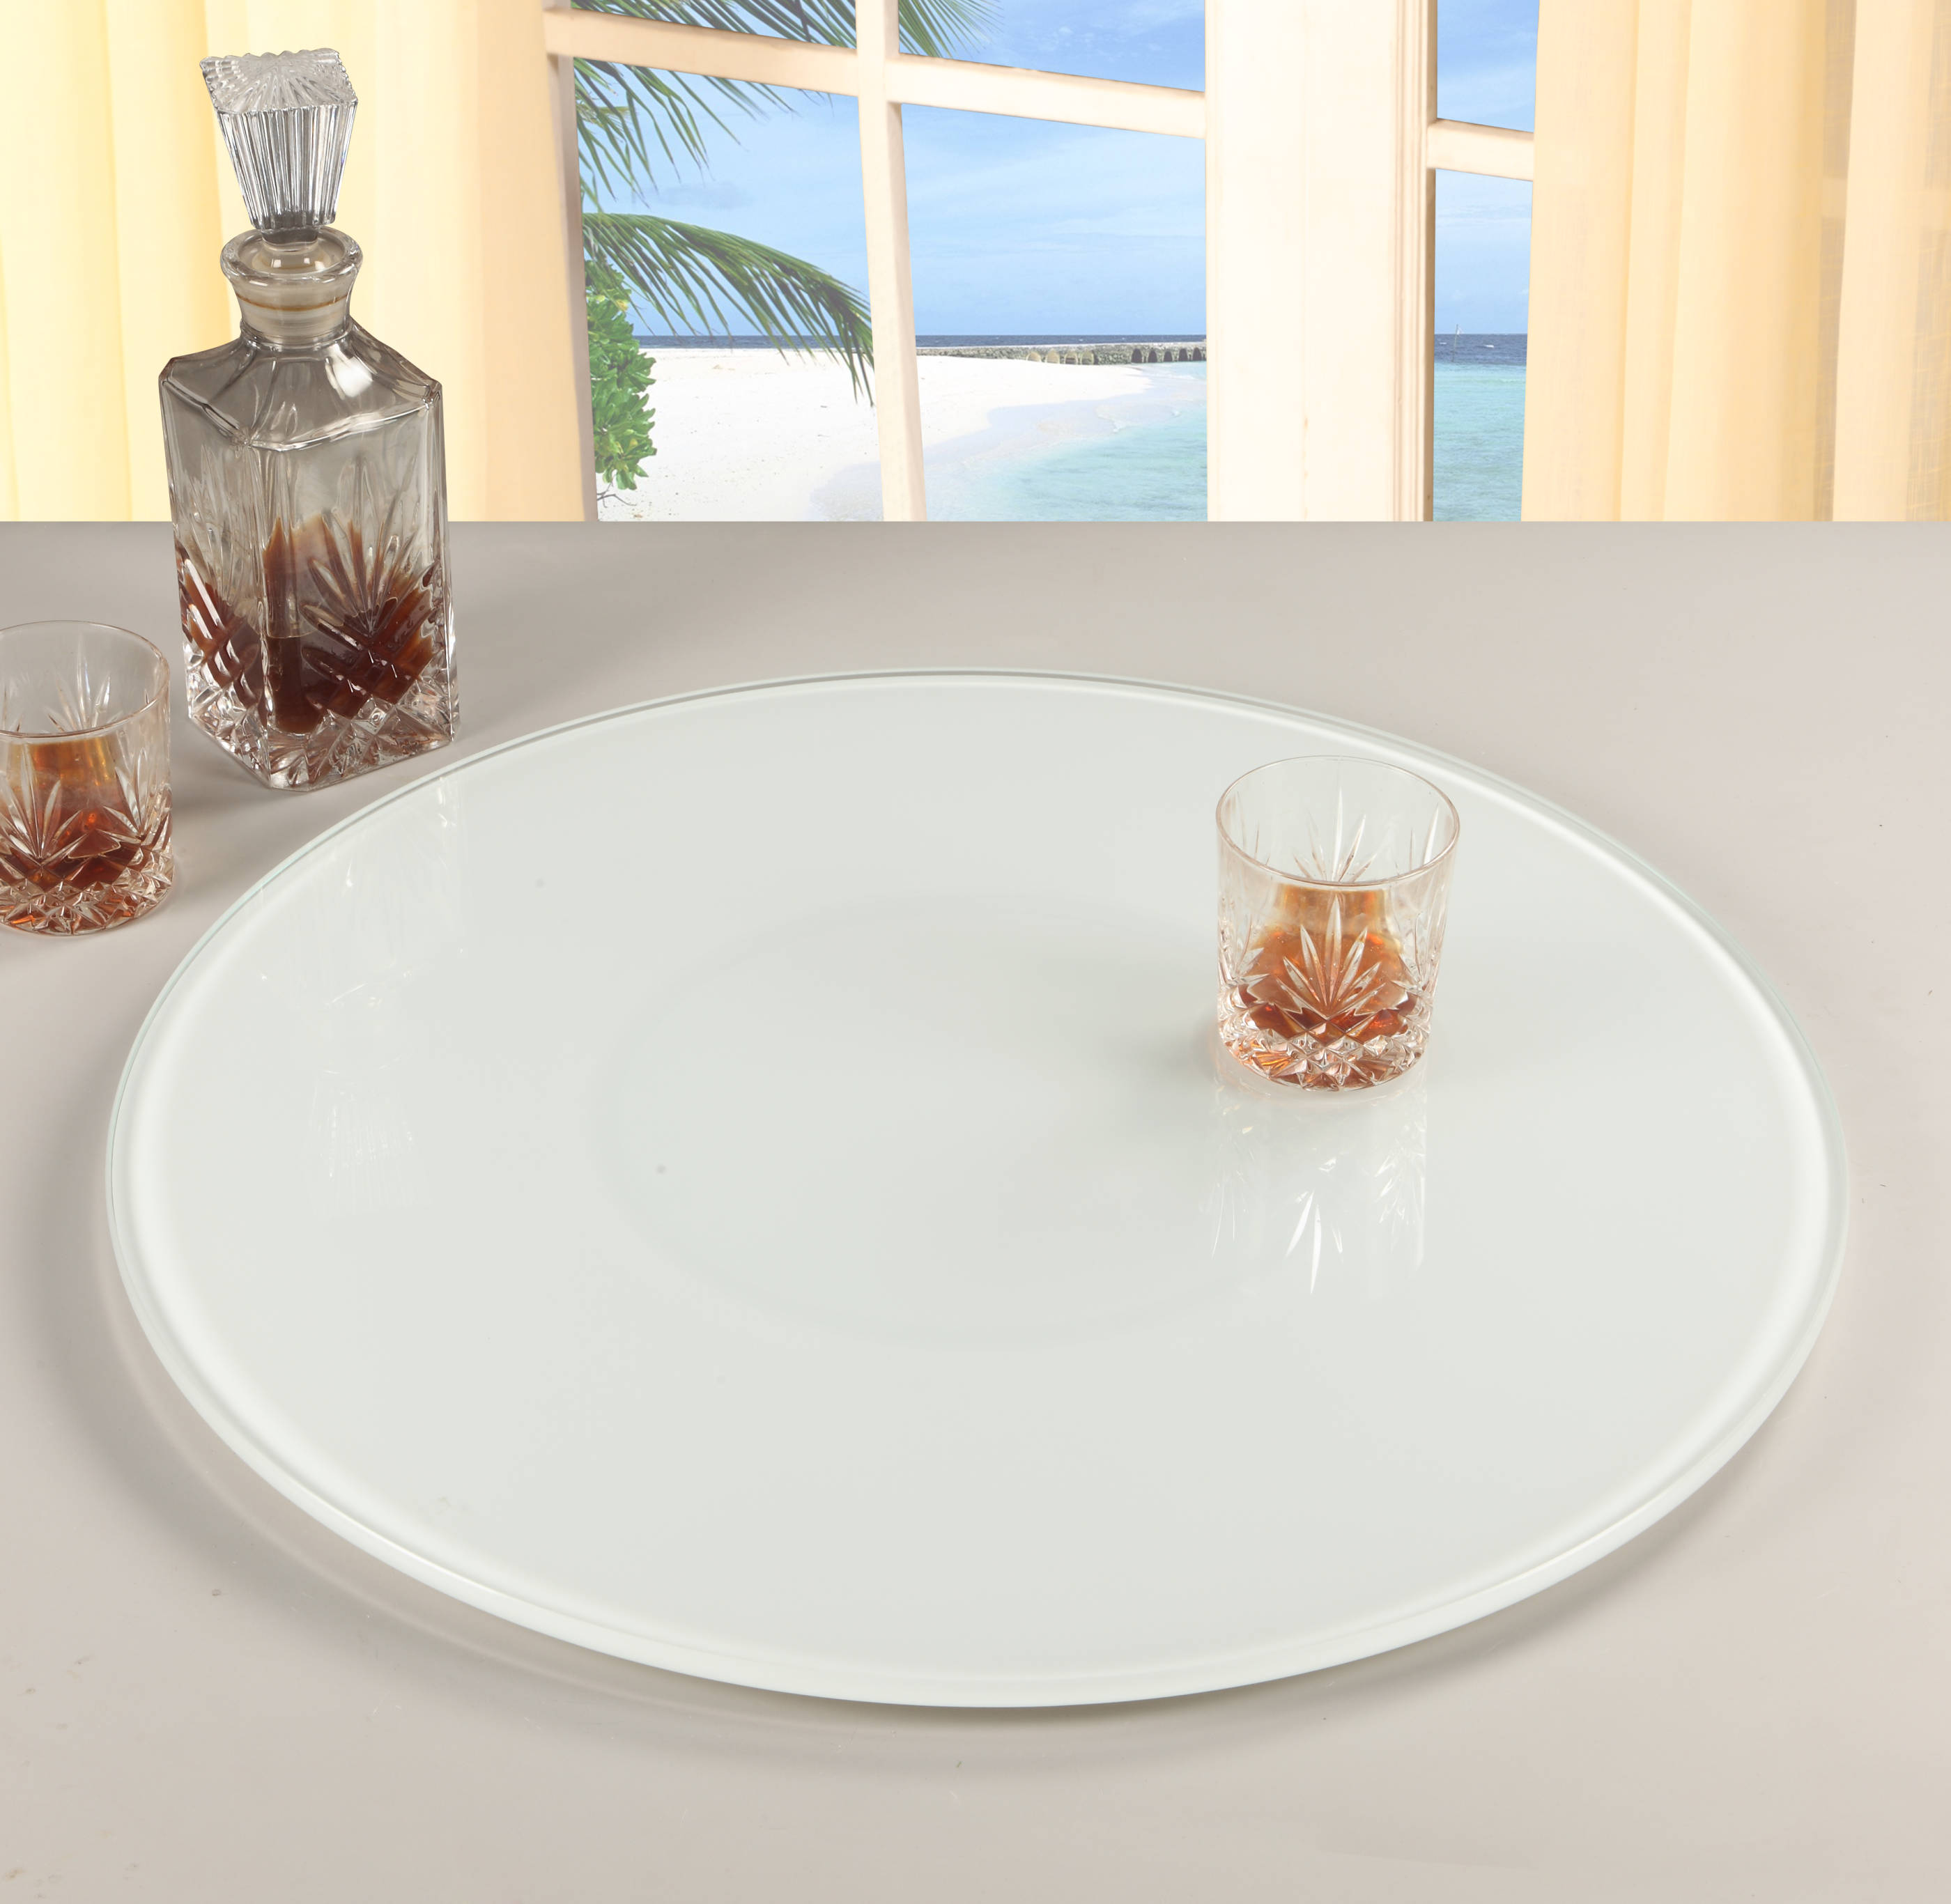 24 Inch Round Rotating Tray To Enlarge